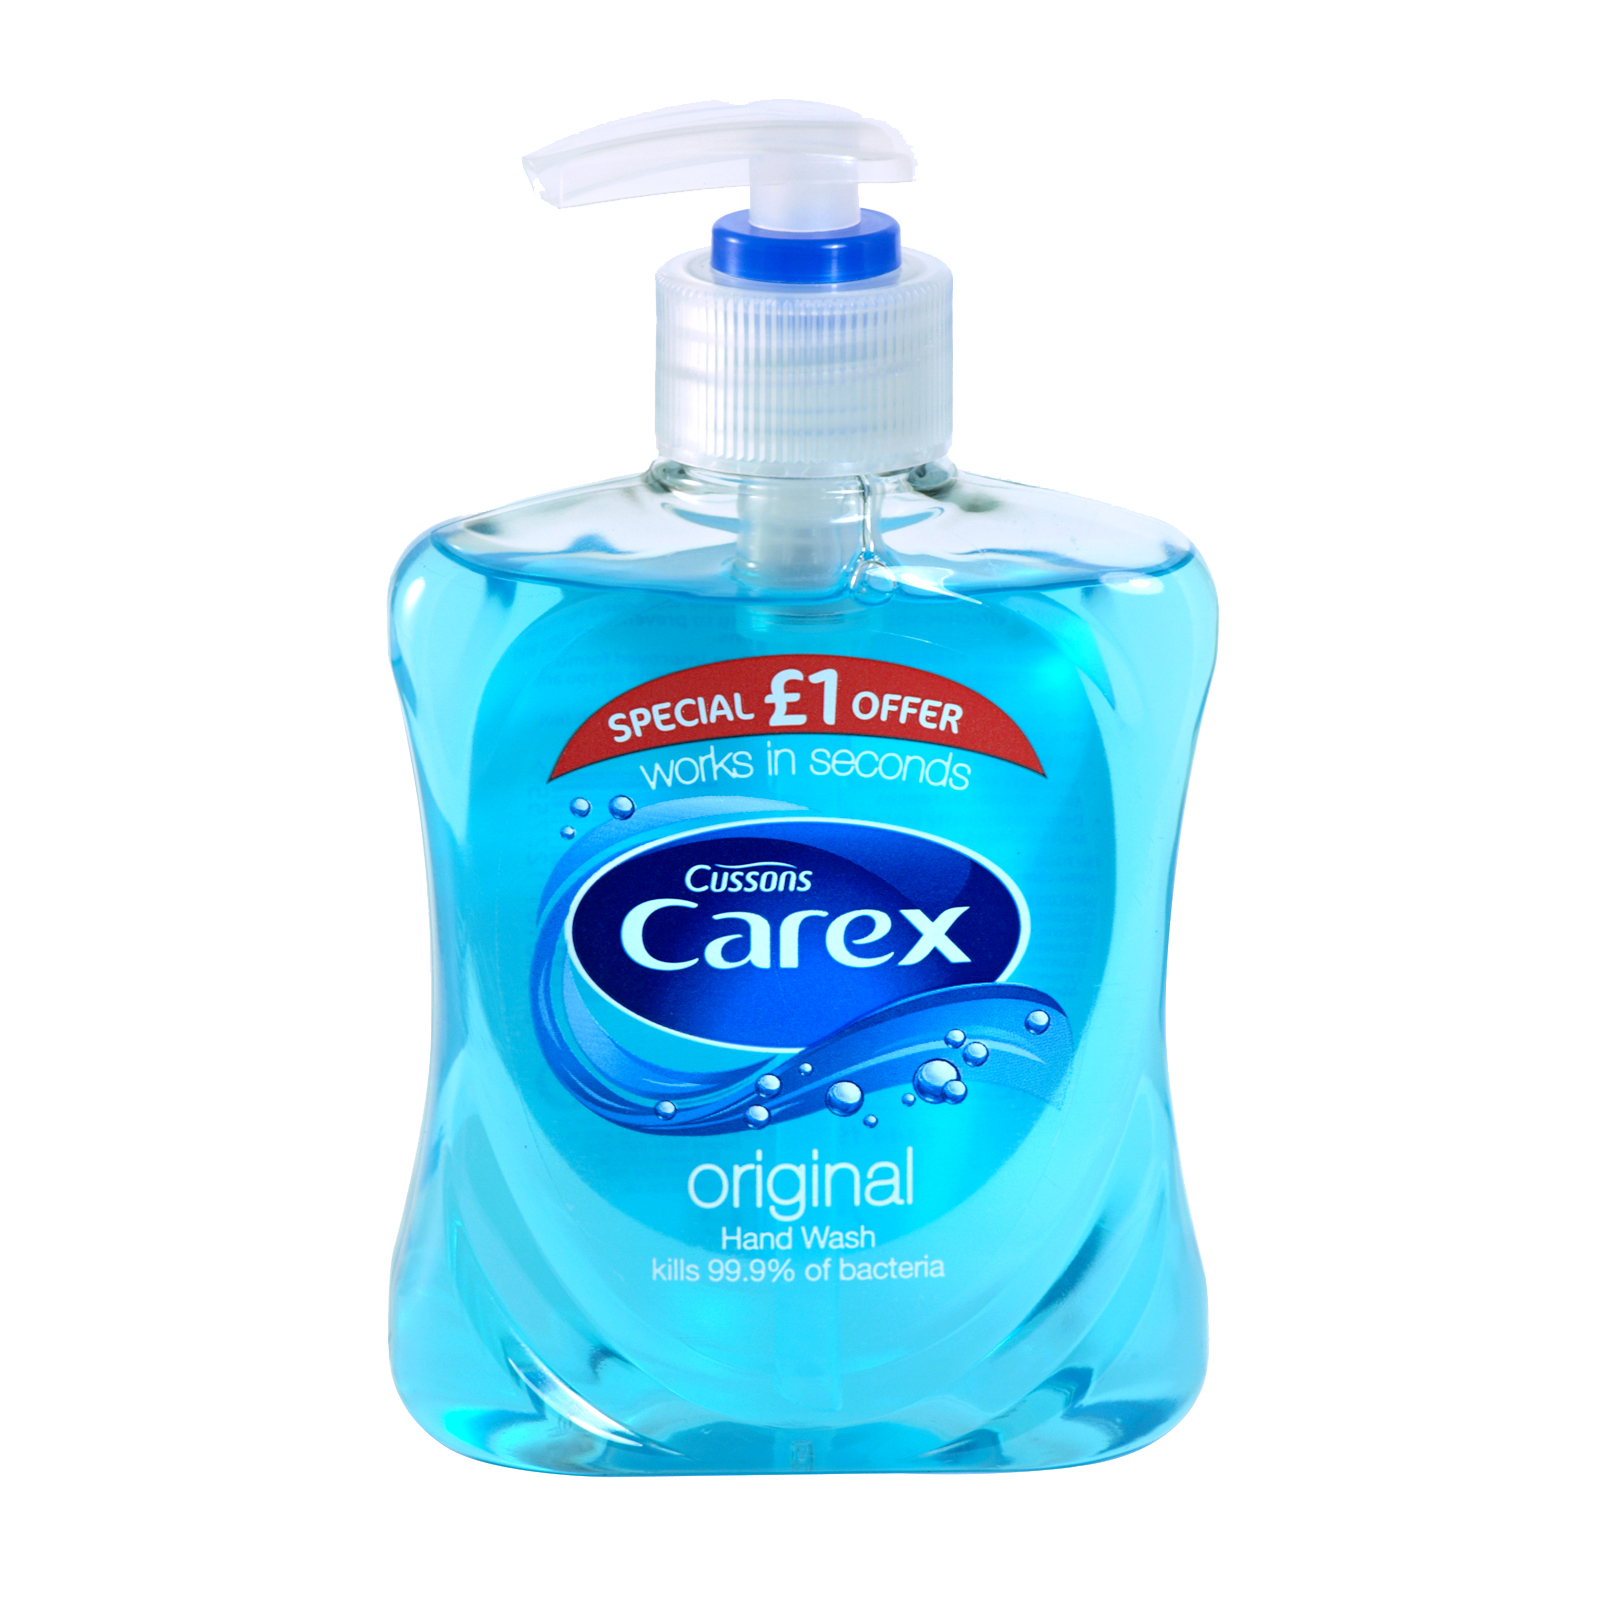 CAREX HANDWASH 250ML ORIGINAL PM£1 X6